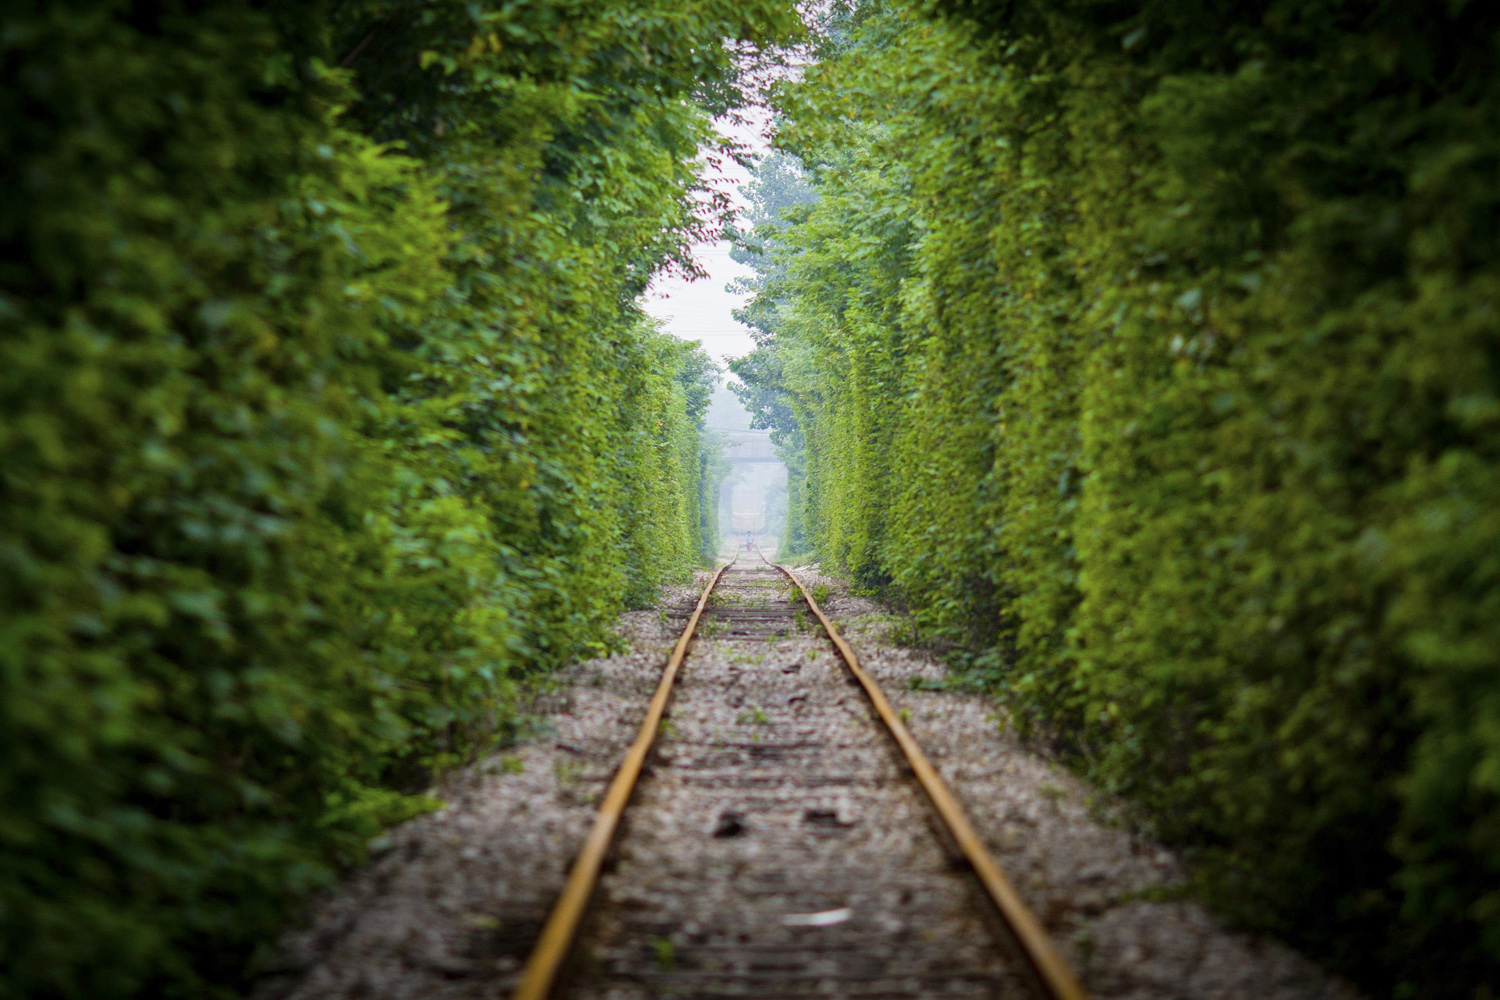 Jun. 15, 2014. A resident walks along a railway track surrounded by trees on both sides, in Nanjing, Jiangsu province.